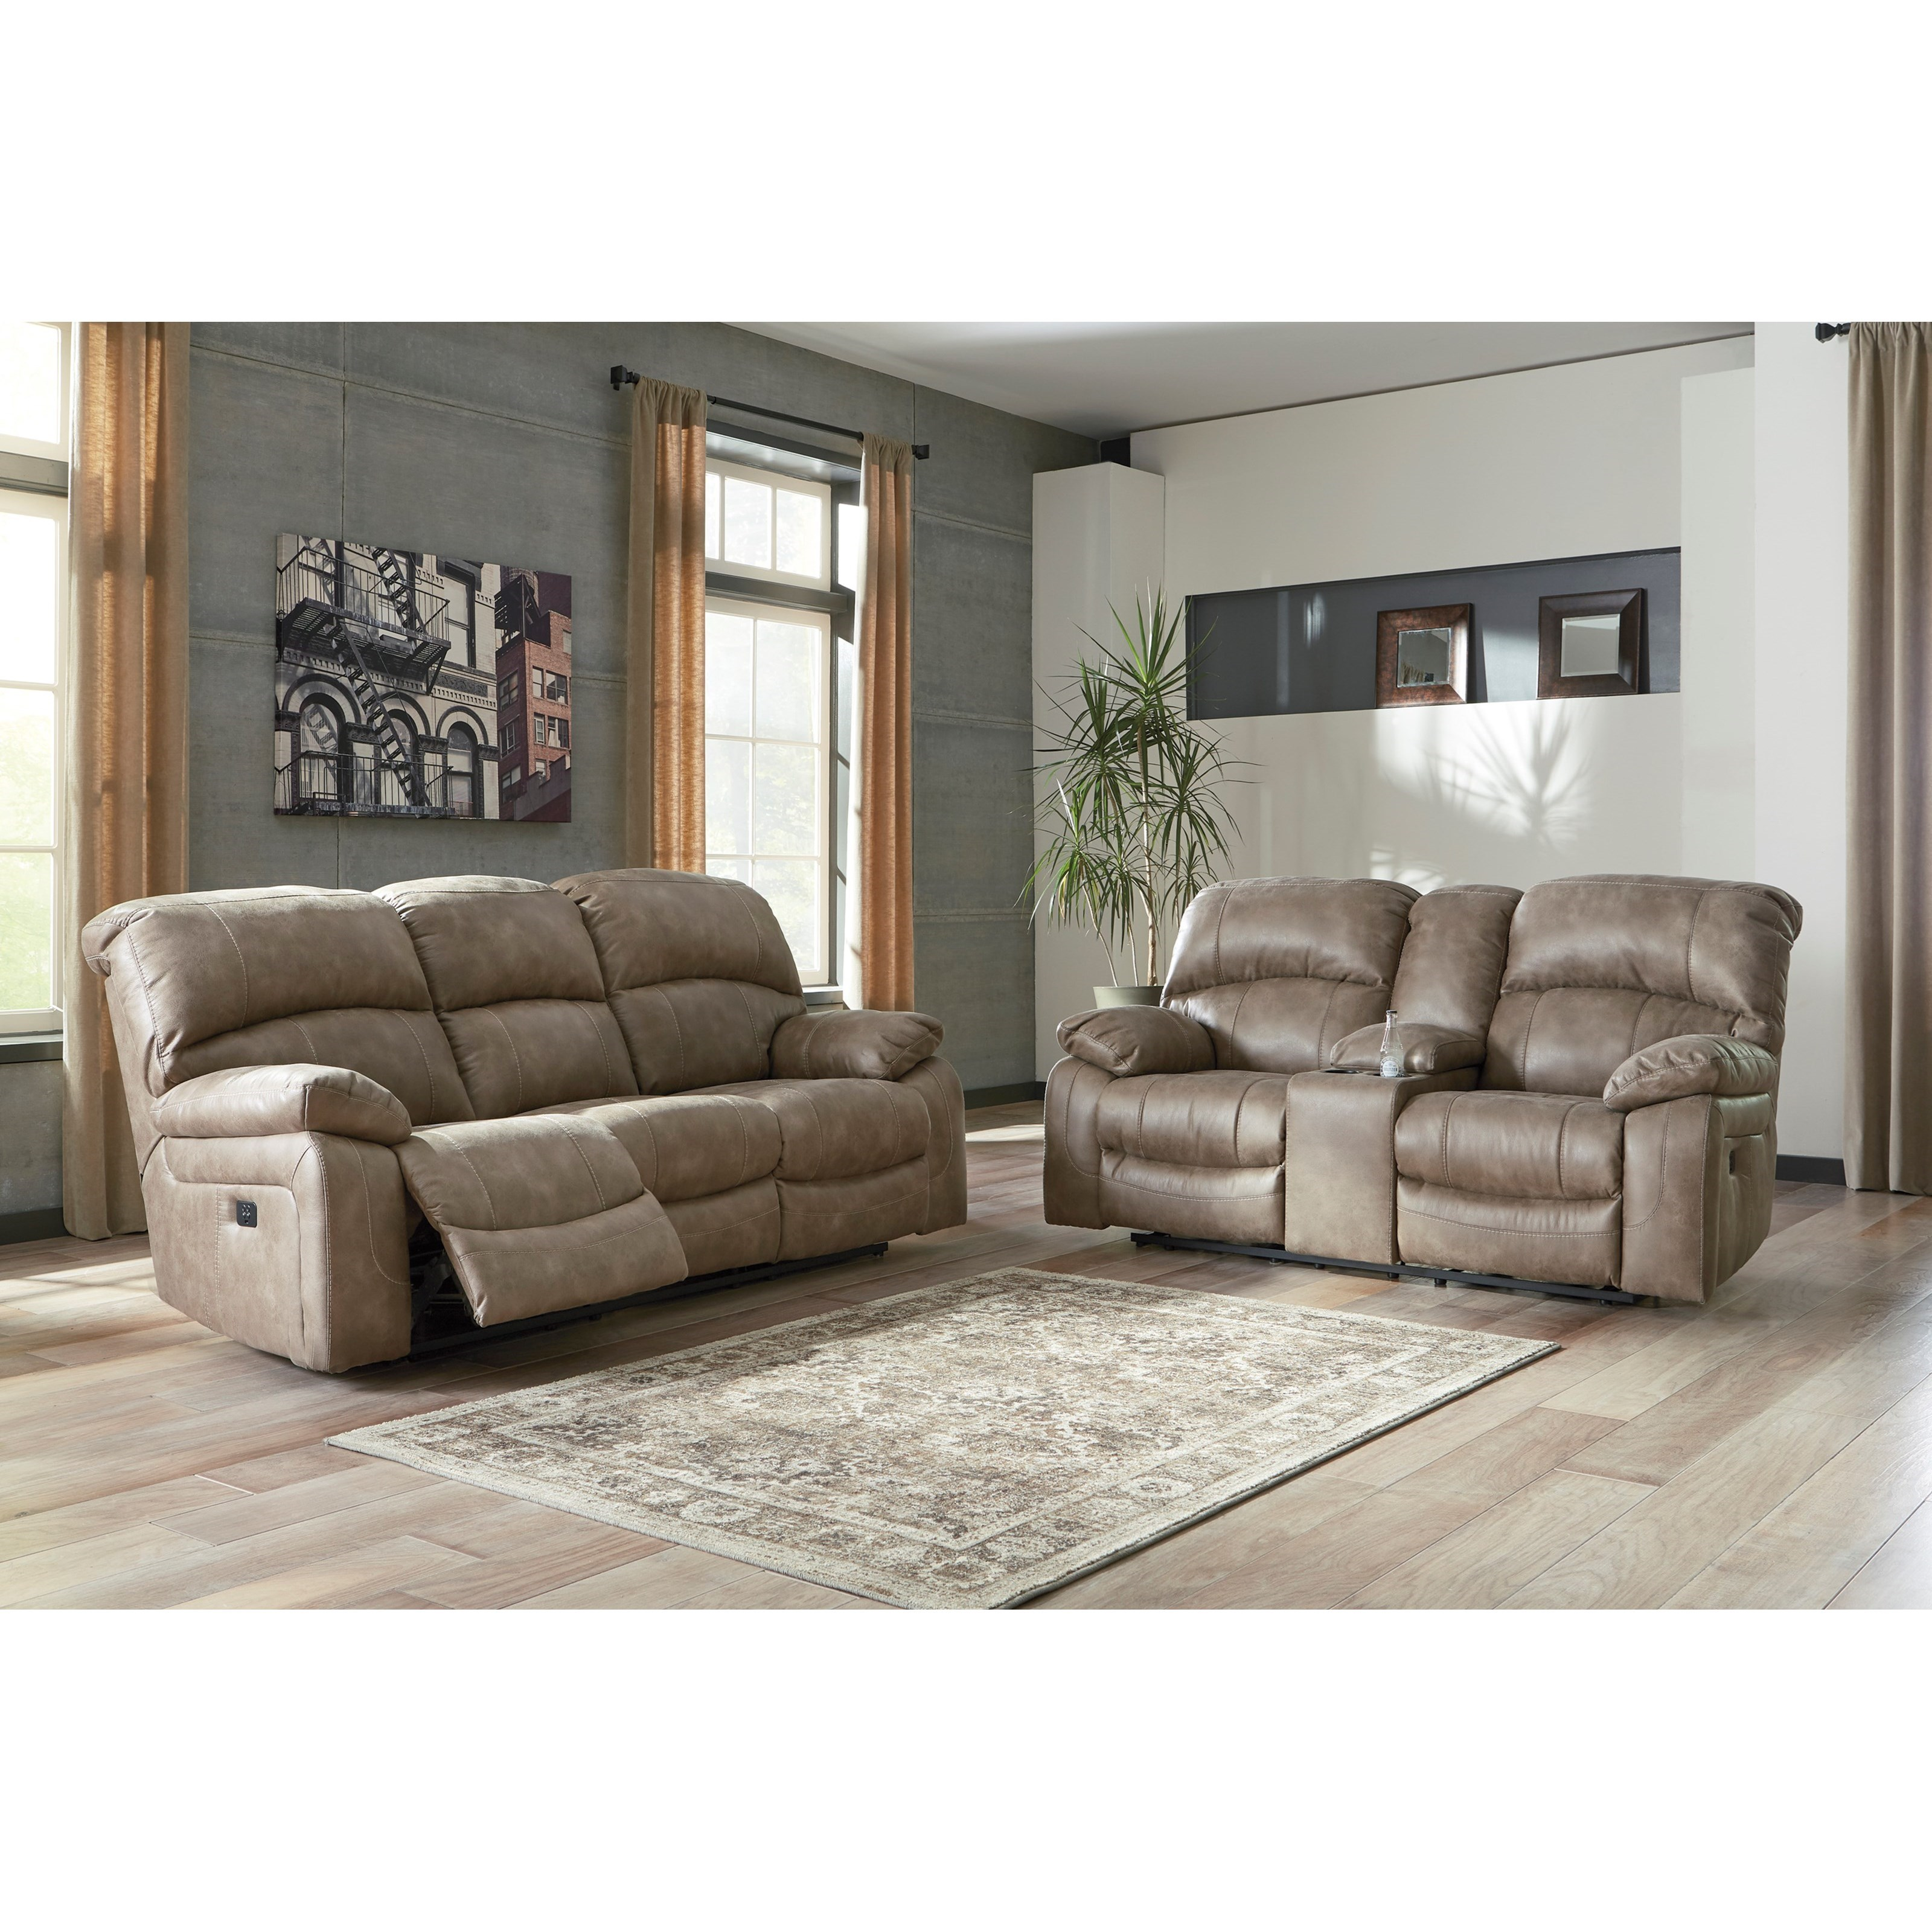 Dunwell Reclining Living Room Group by Signature Design by Ashley at Zak's Warehouse Clearance Center